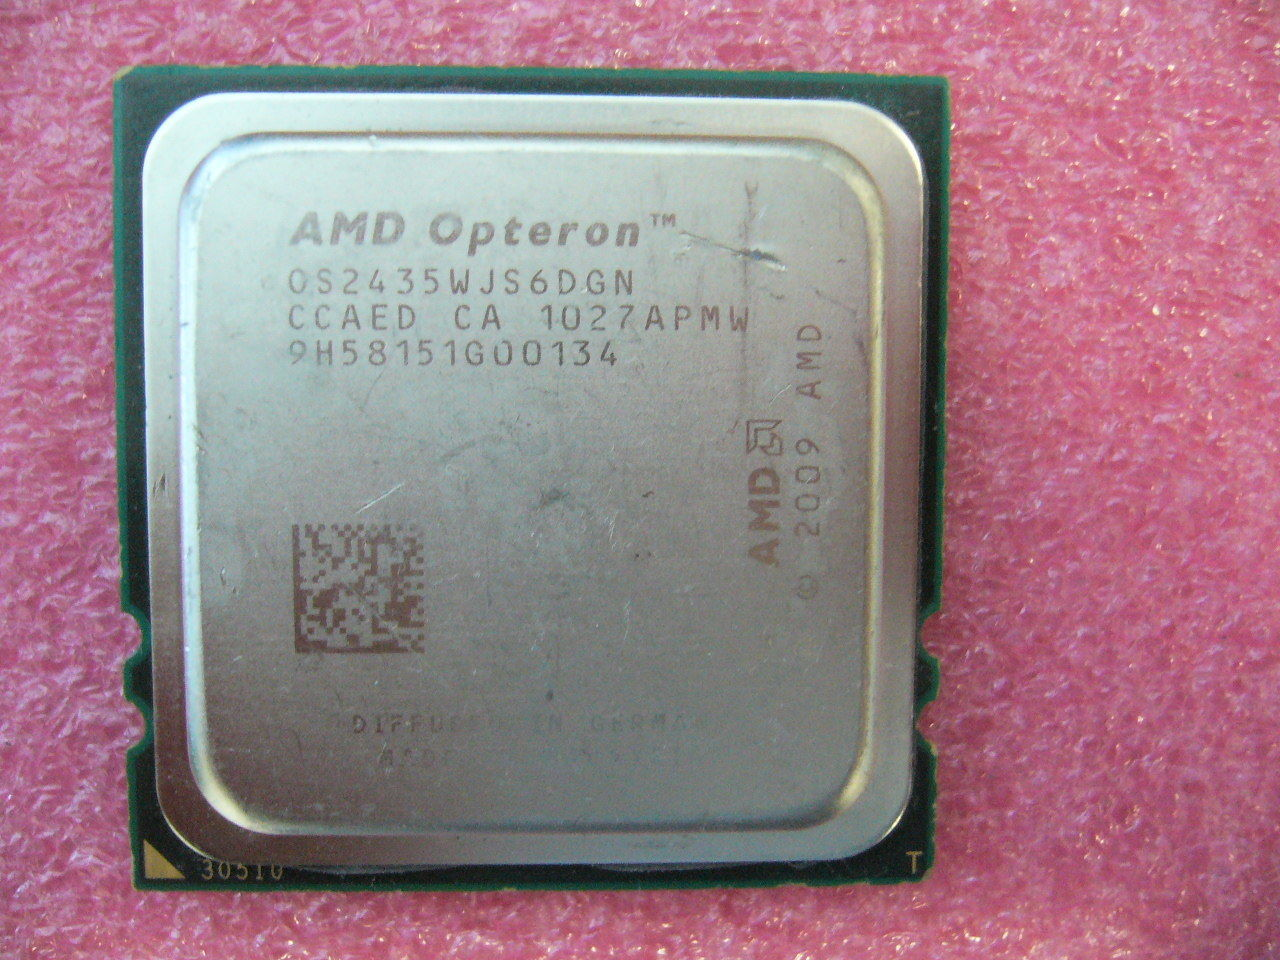 QTY 1x AMD Opteron 2435 2.6 GHz Six Core (OS2435WJS6DGN) CPU Socket F 1207